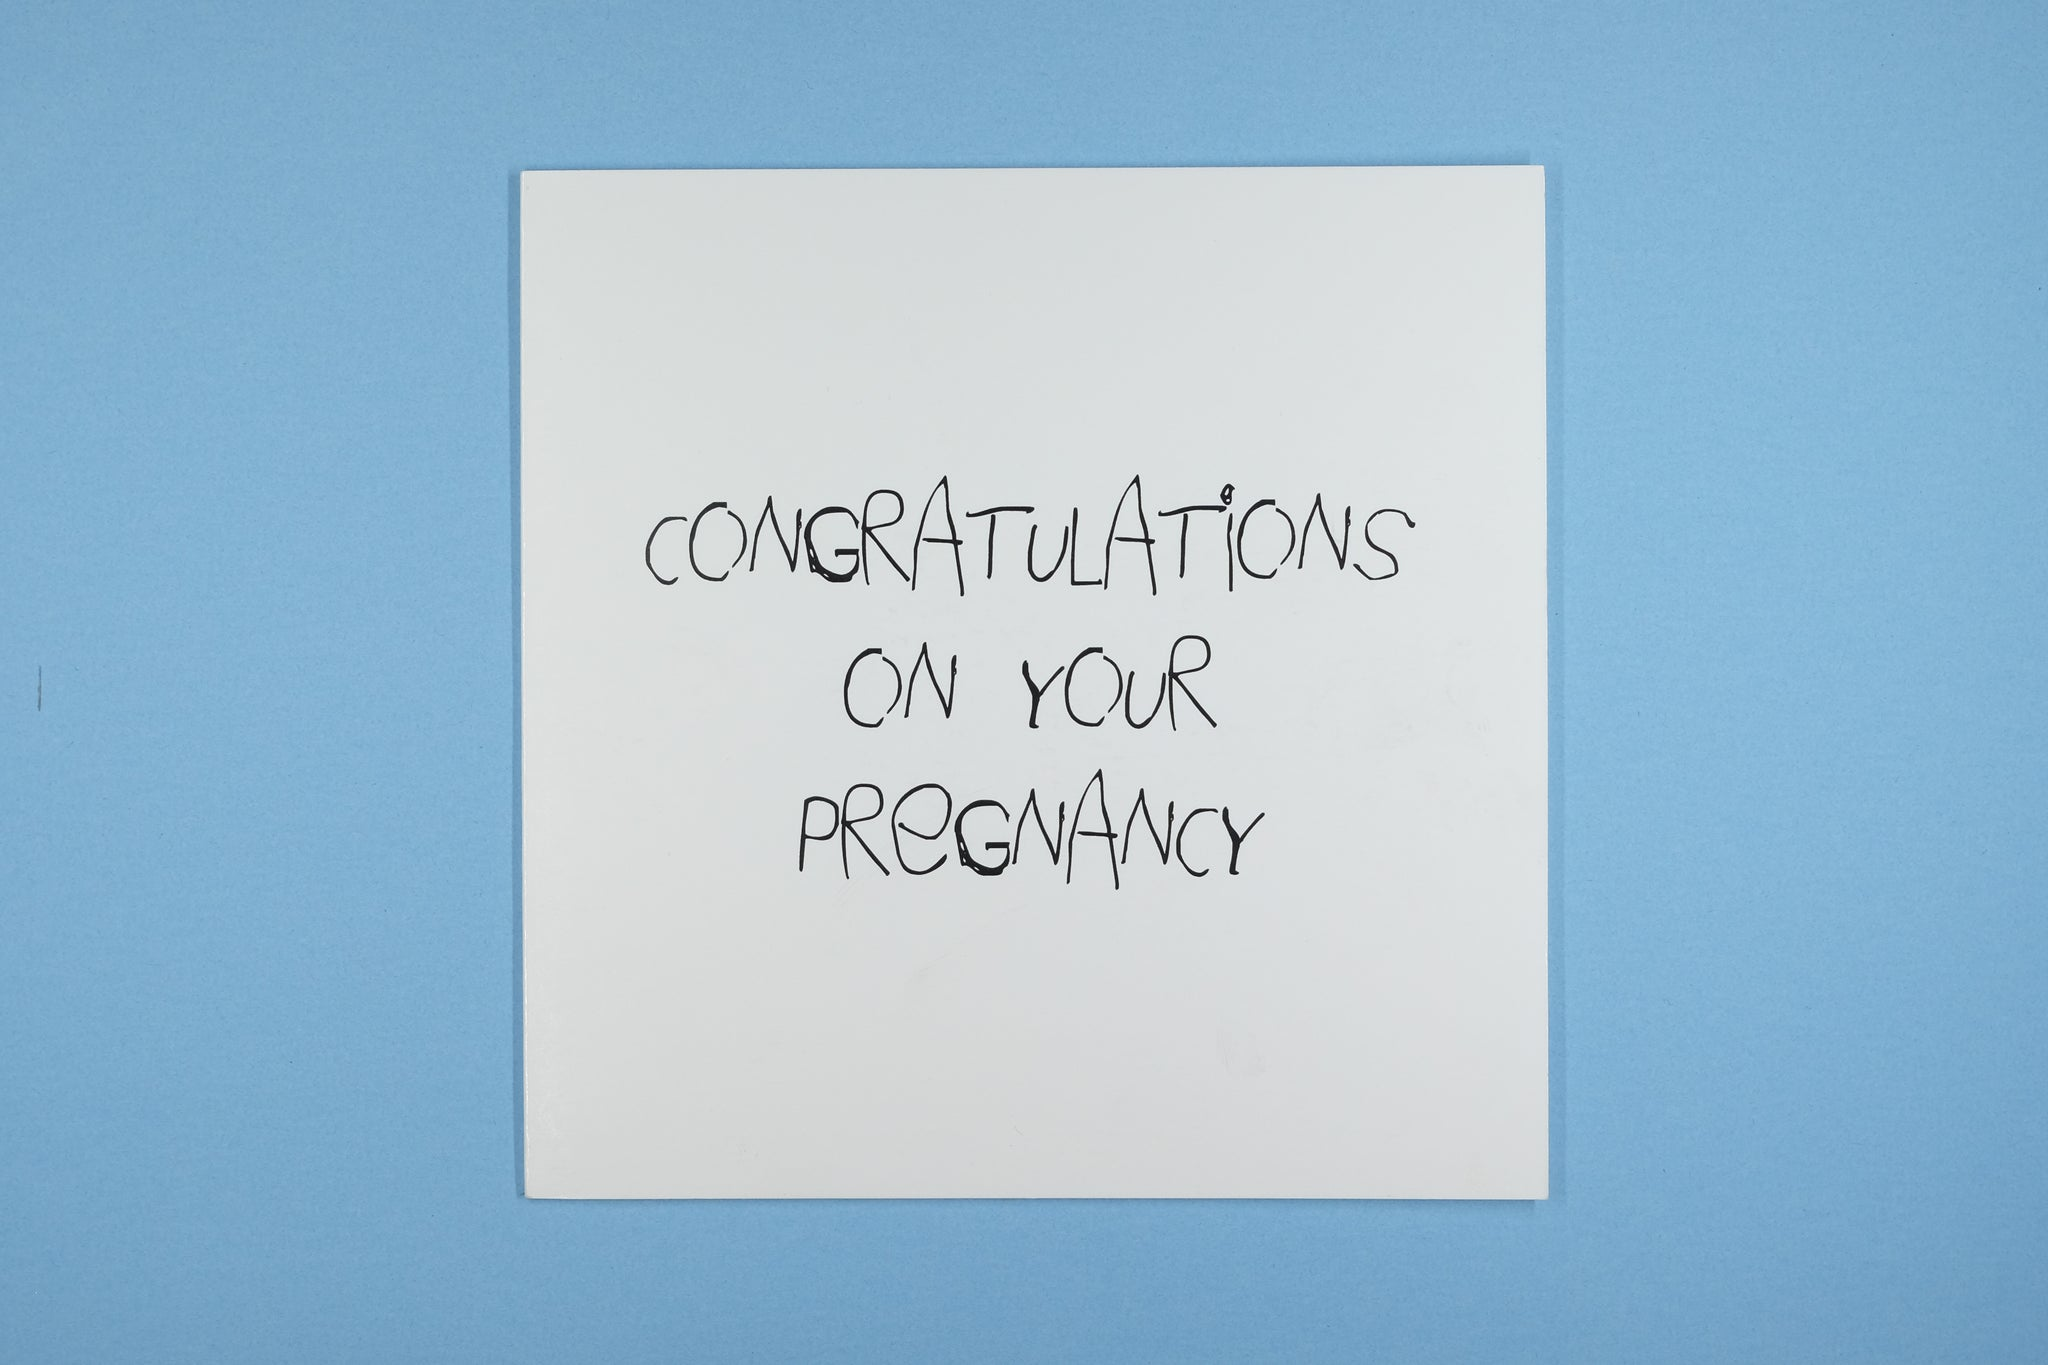 Congratulations On Your Pregnancy I hope It's Not Ginger